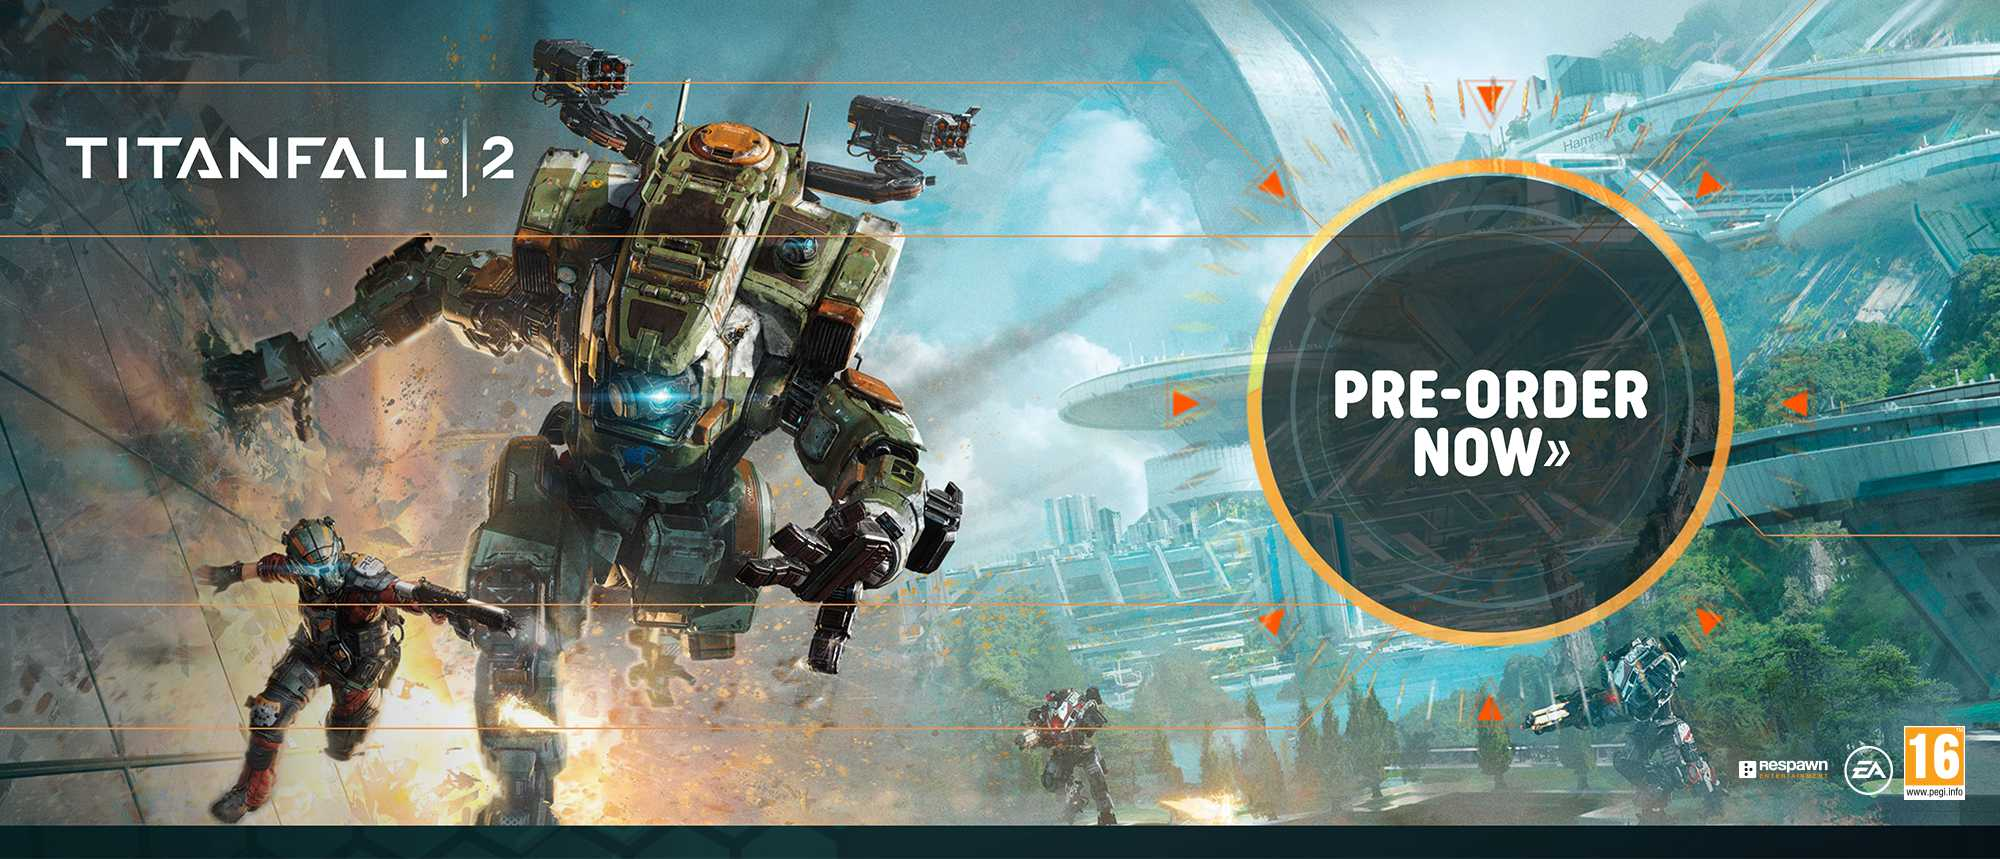 Shop All Titanfall 2 At Smyths Toys Superstores!